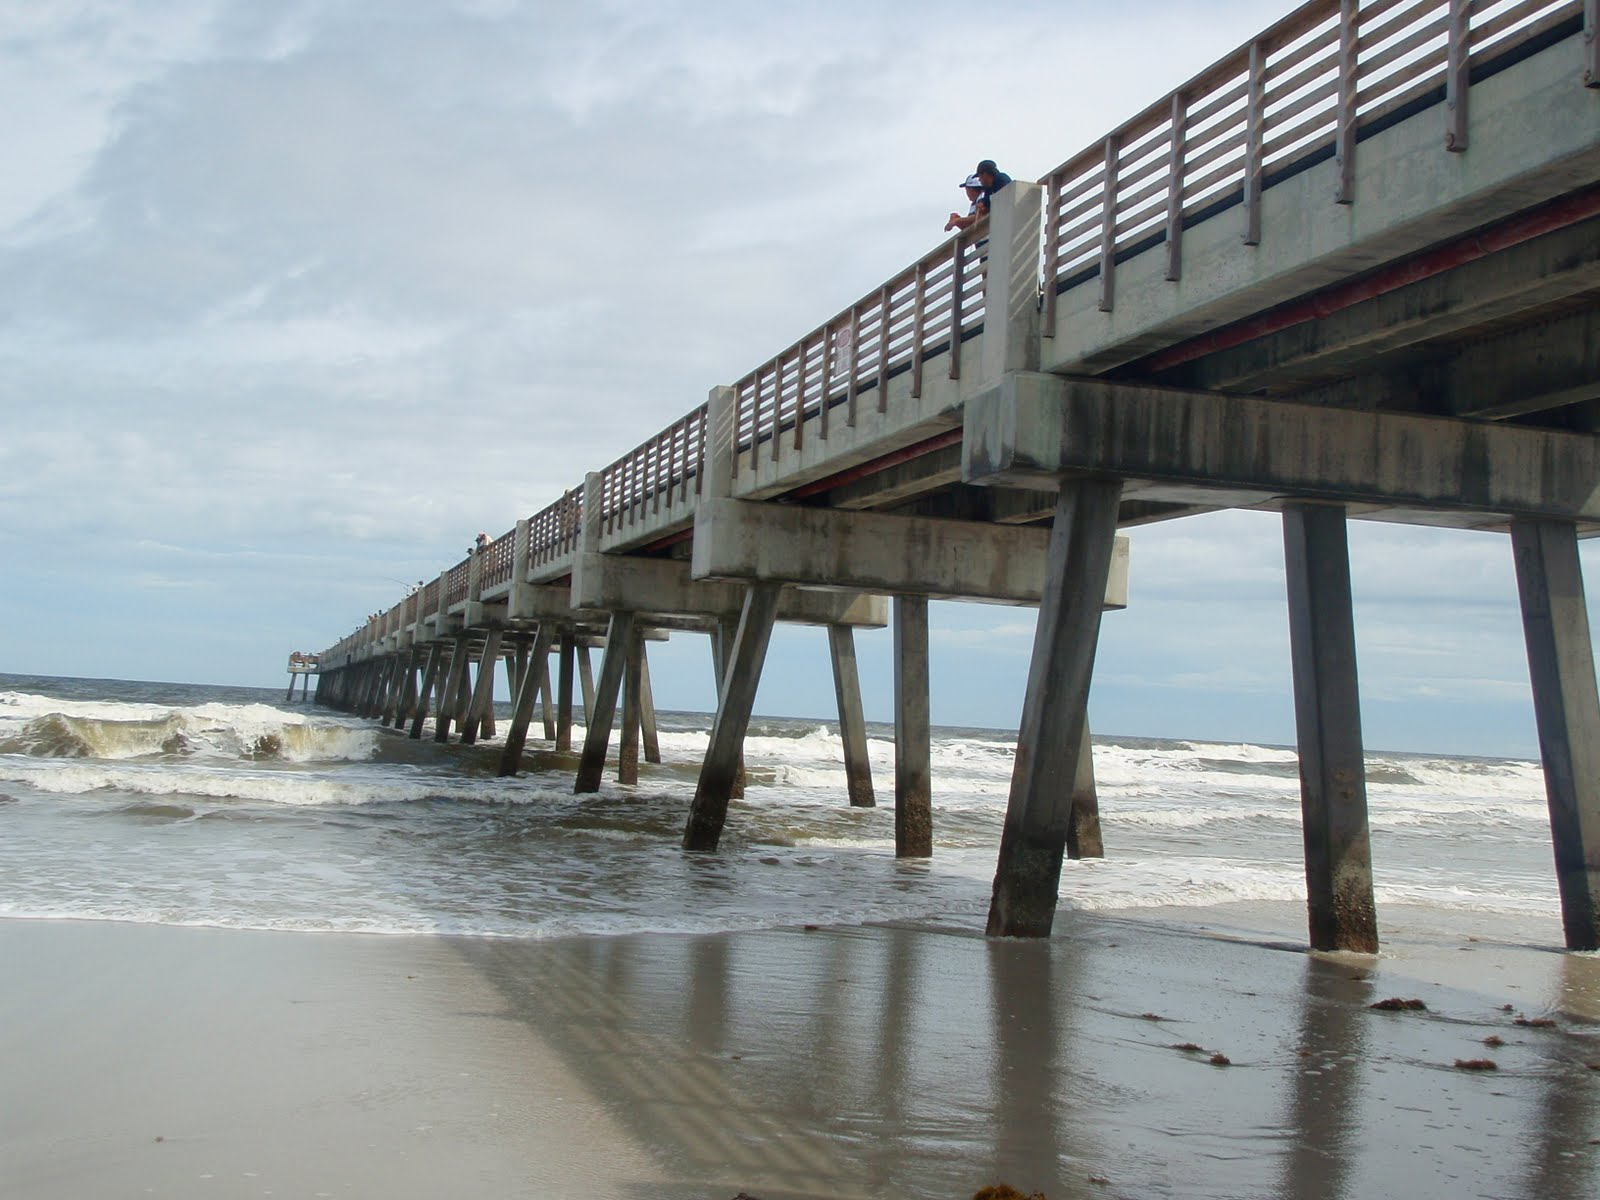 Ashley running life 39 s adventures one mile at a time for Jacksonville fishing pier